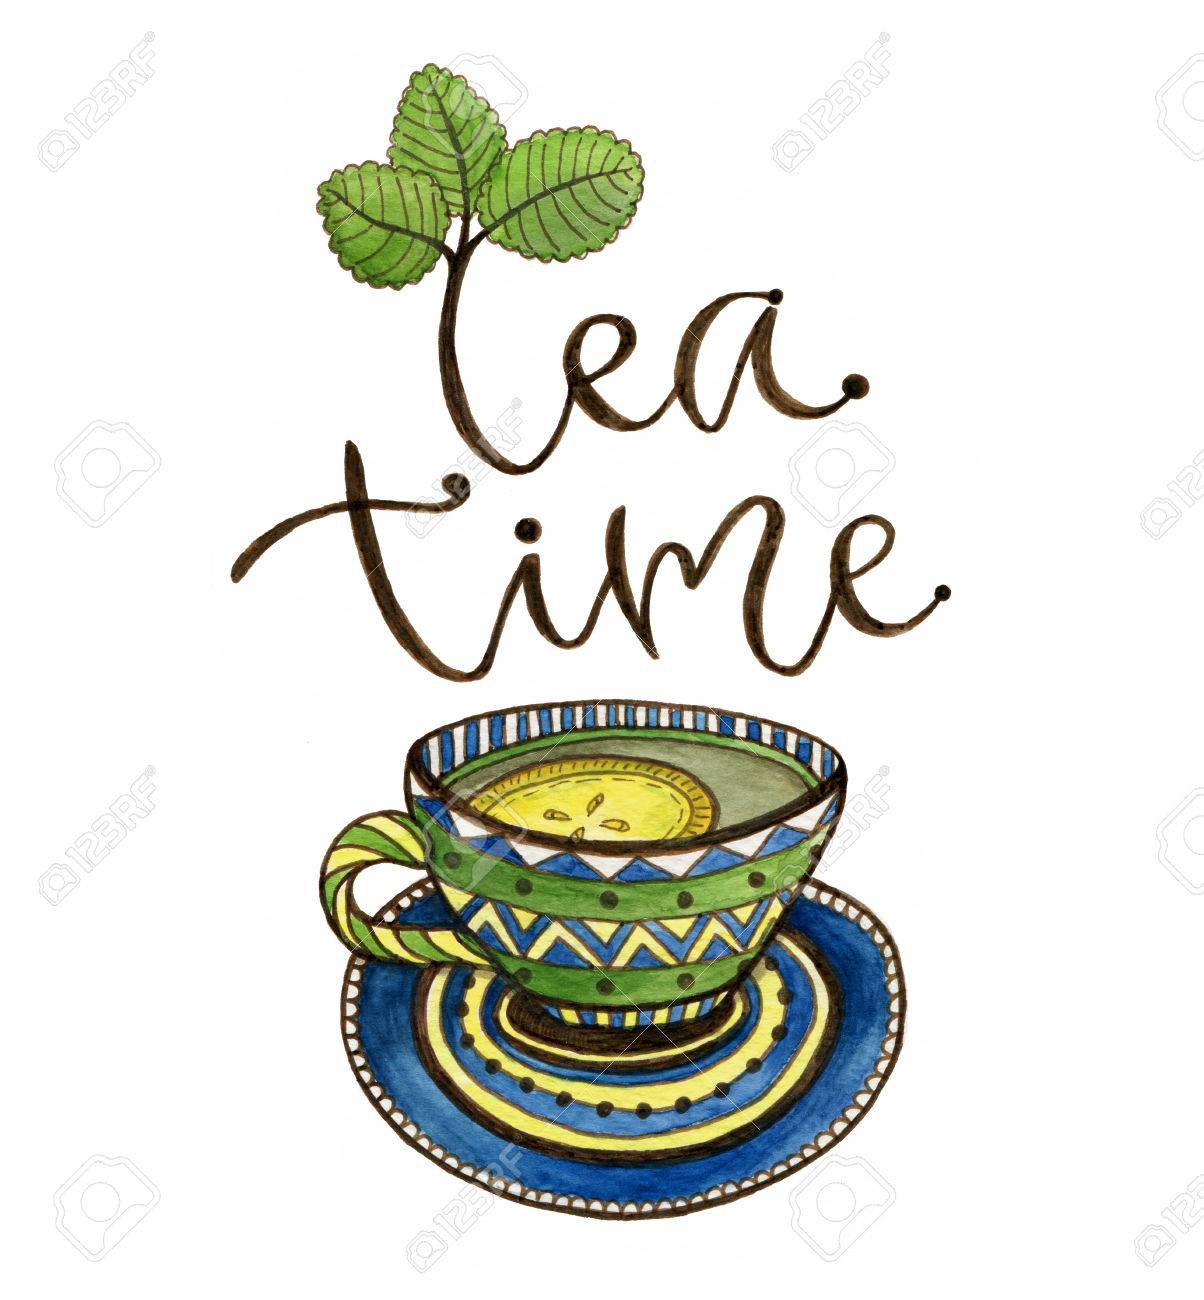 Tea Time Illustration With Calligraphy Watercolor Print With